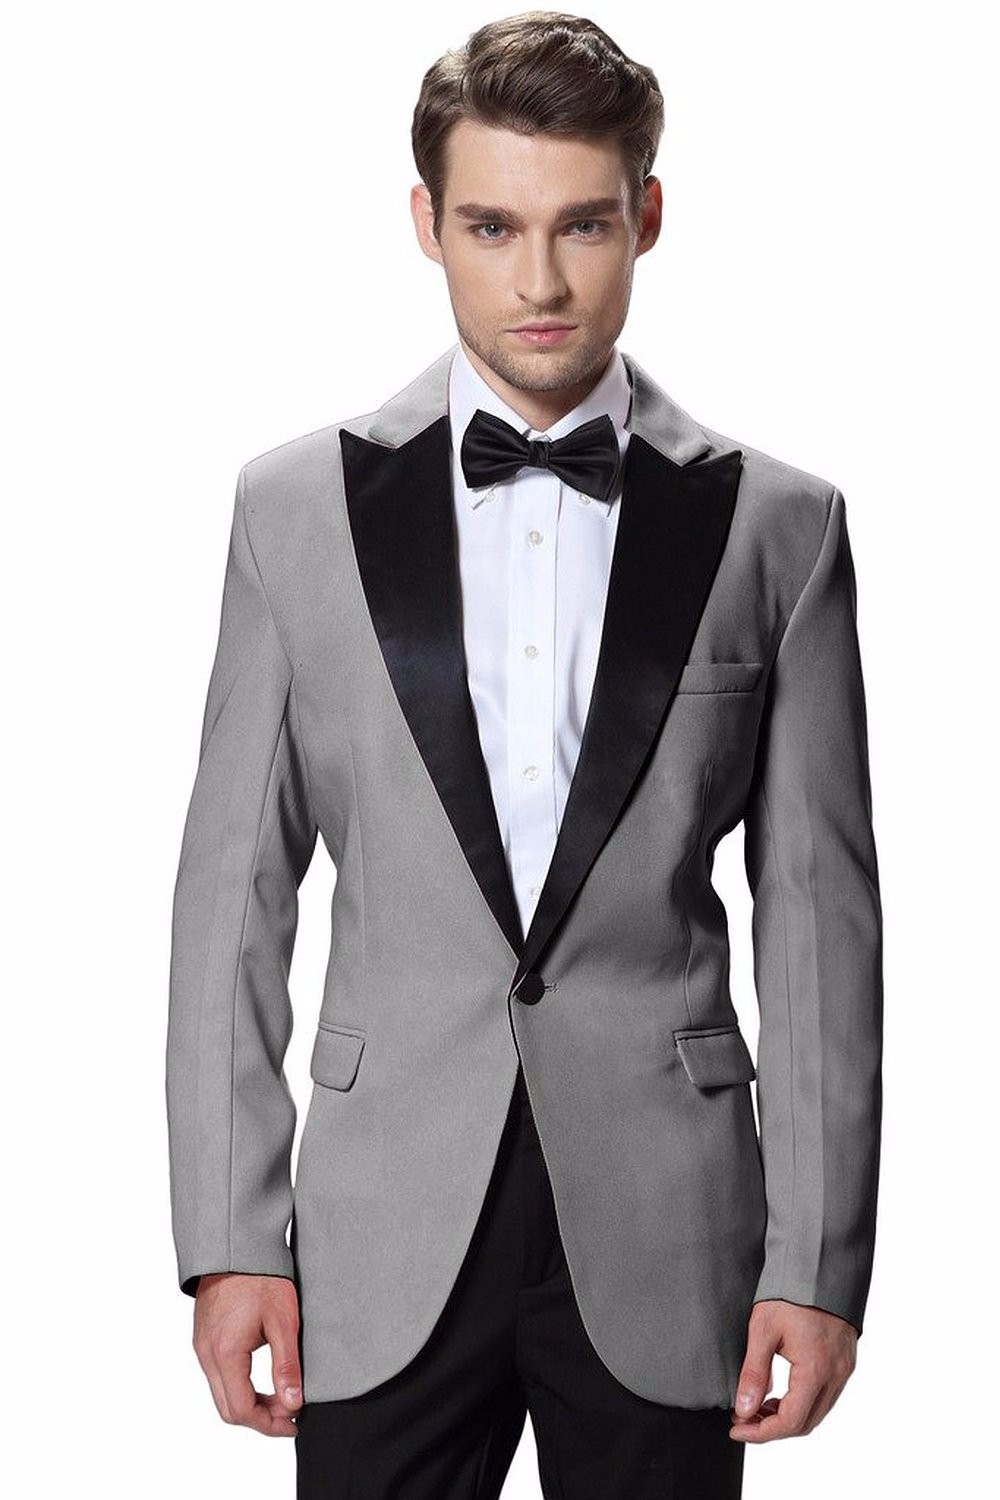 7.1 Hanayome Men's Slim Official Fit 1 Button Shawl Tuxedo Collection  suits mens men suits for wedding